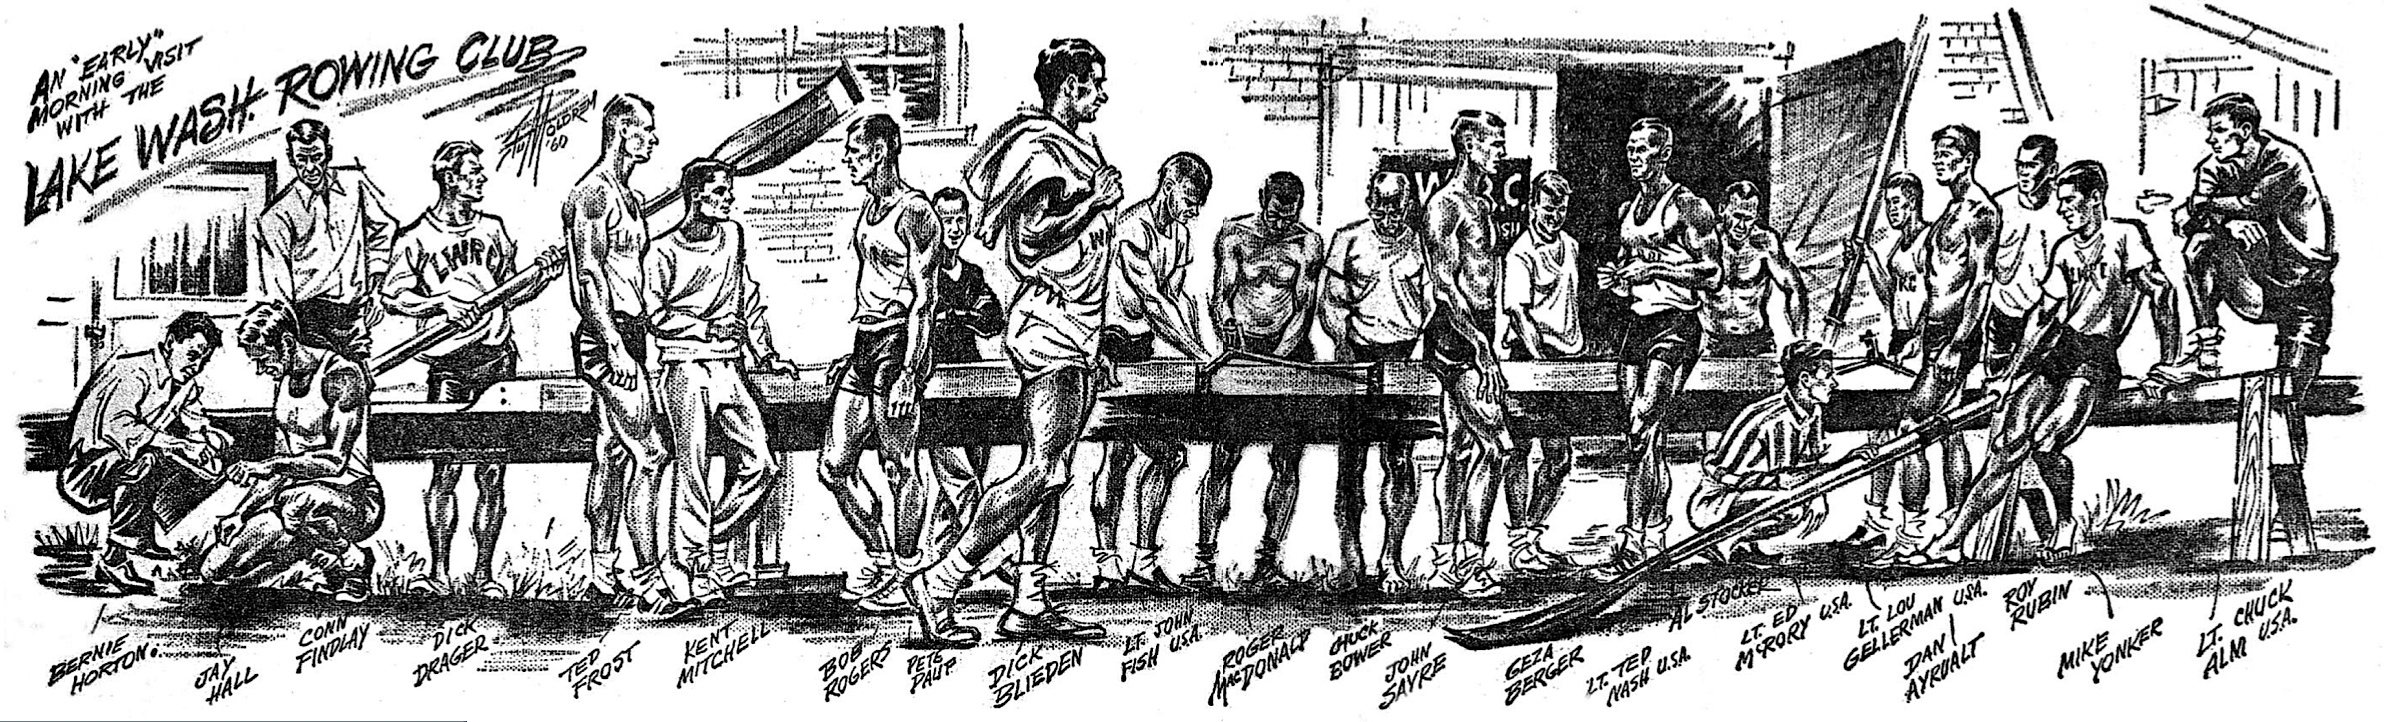 """""""An early morning visit with the Lake Washington Rowing Club,"""" 1960 cartoon by Stu Moldrem of the Seattle Post-Intelligencer (Scoll Down for Detailed Description)"""